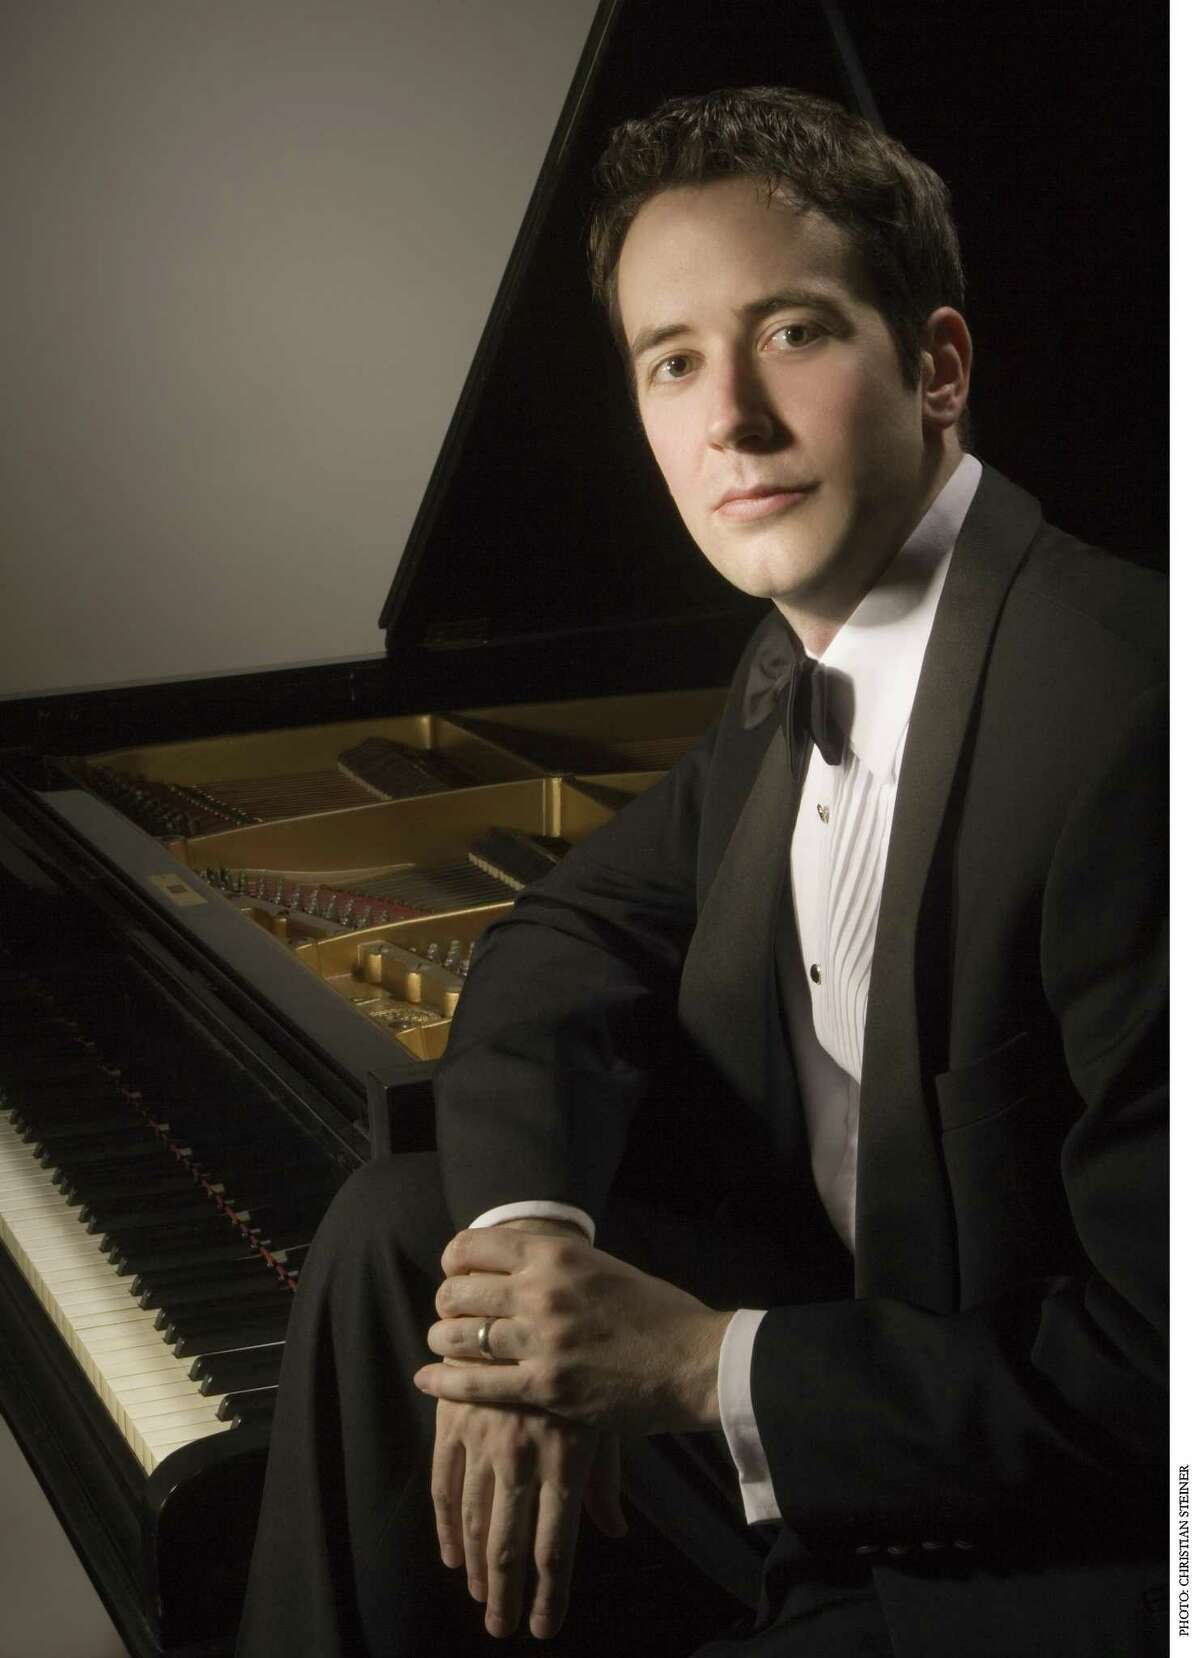 Classical piano player Philip Edward Fisher played the Beethoven's Piano Concerto No. 1.